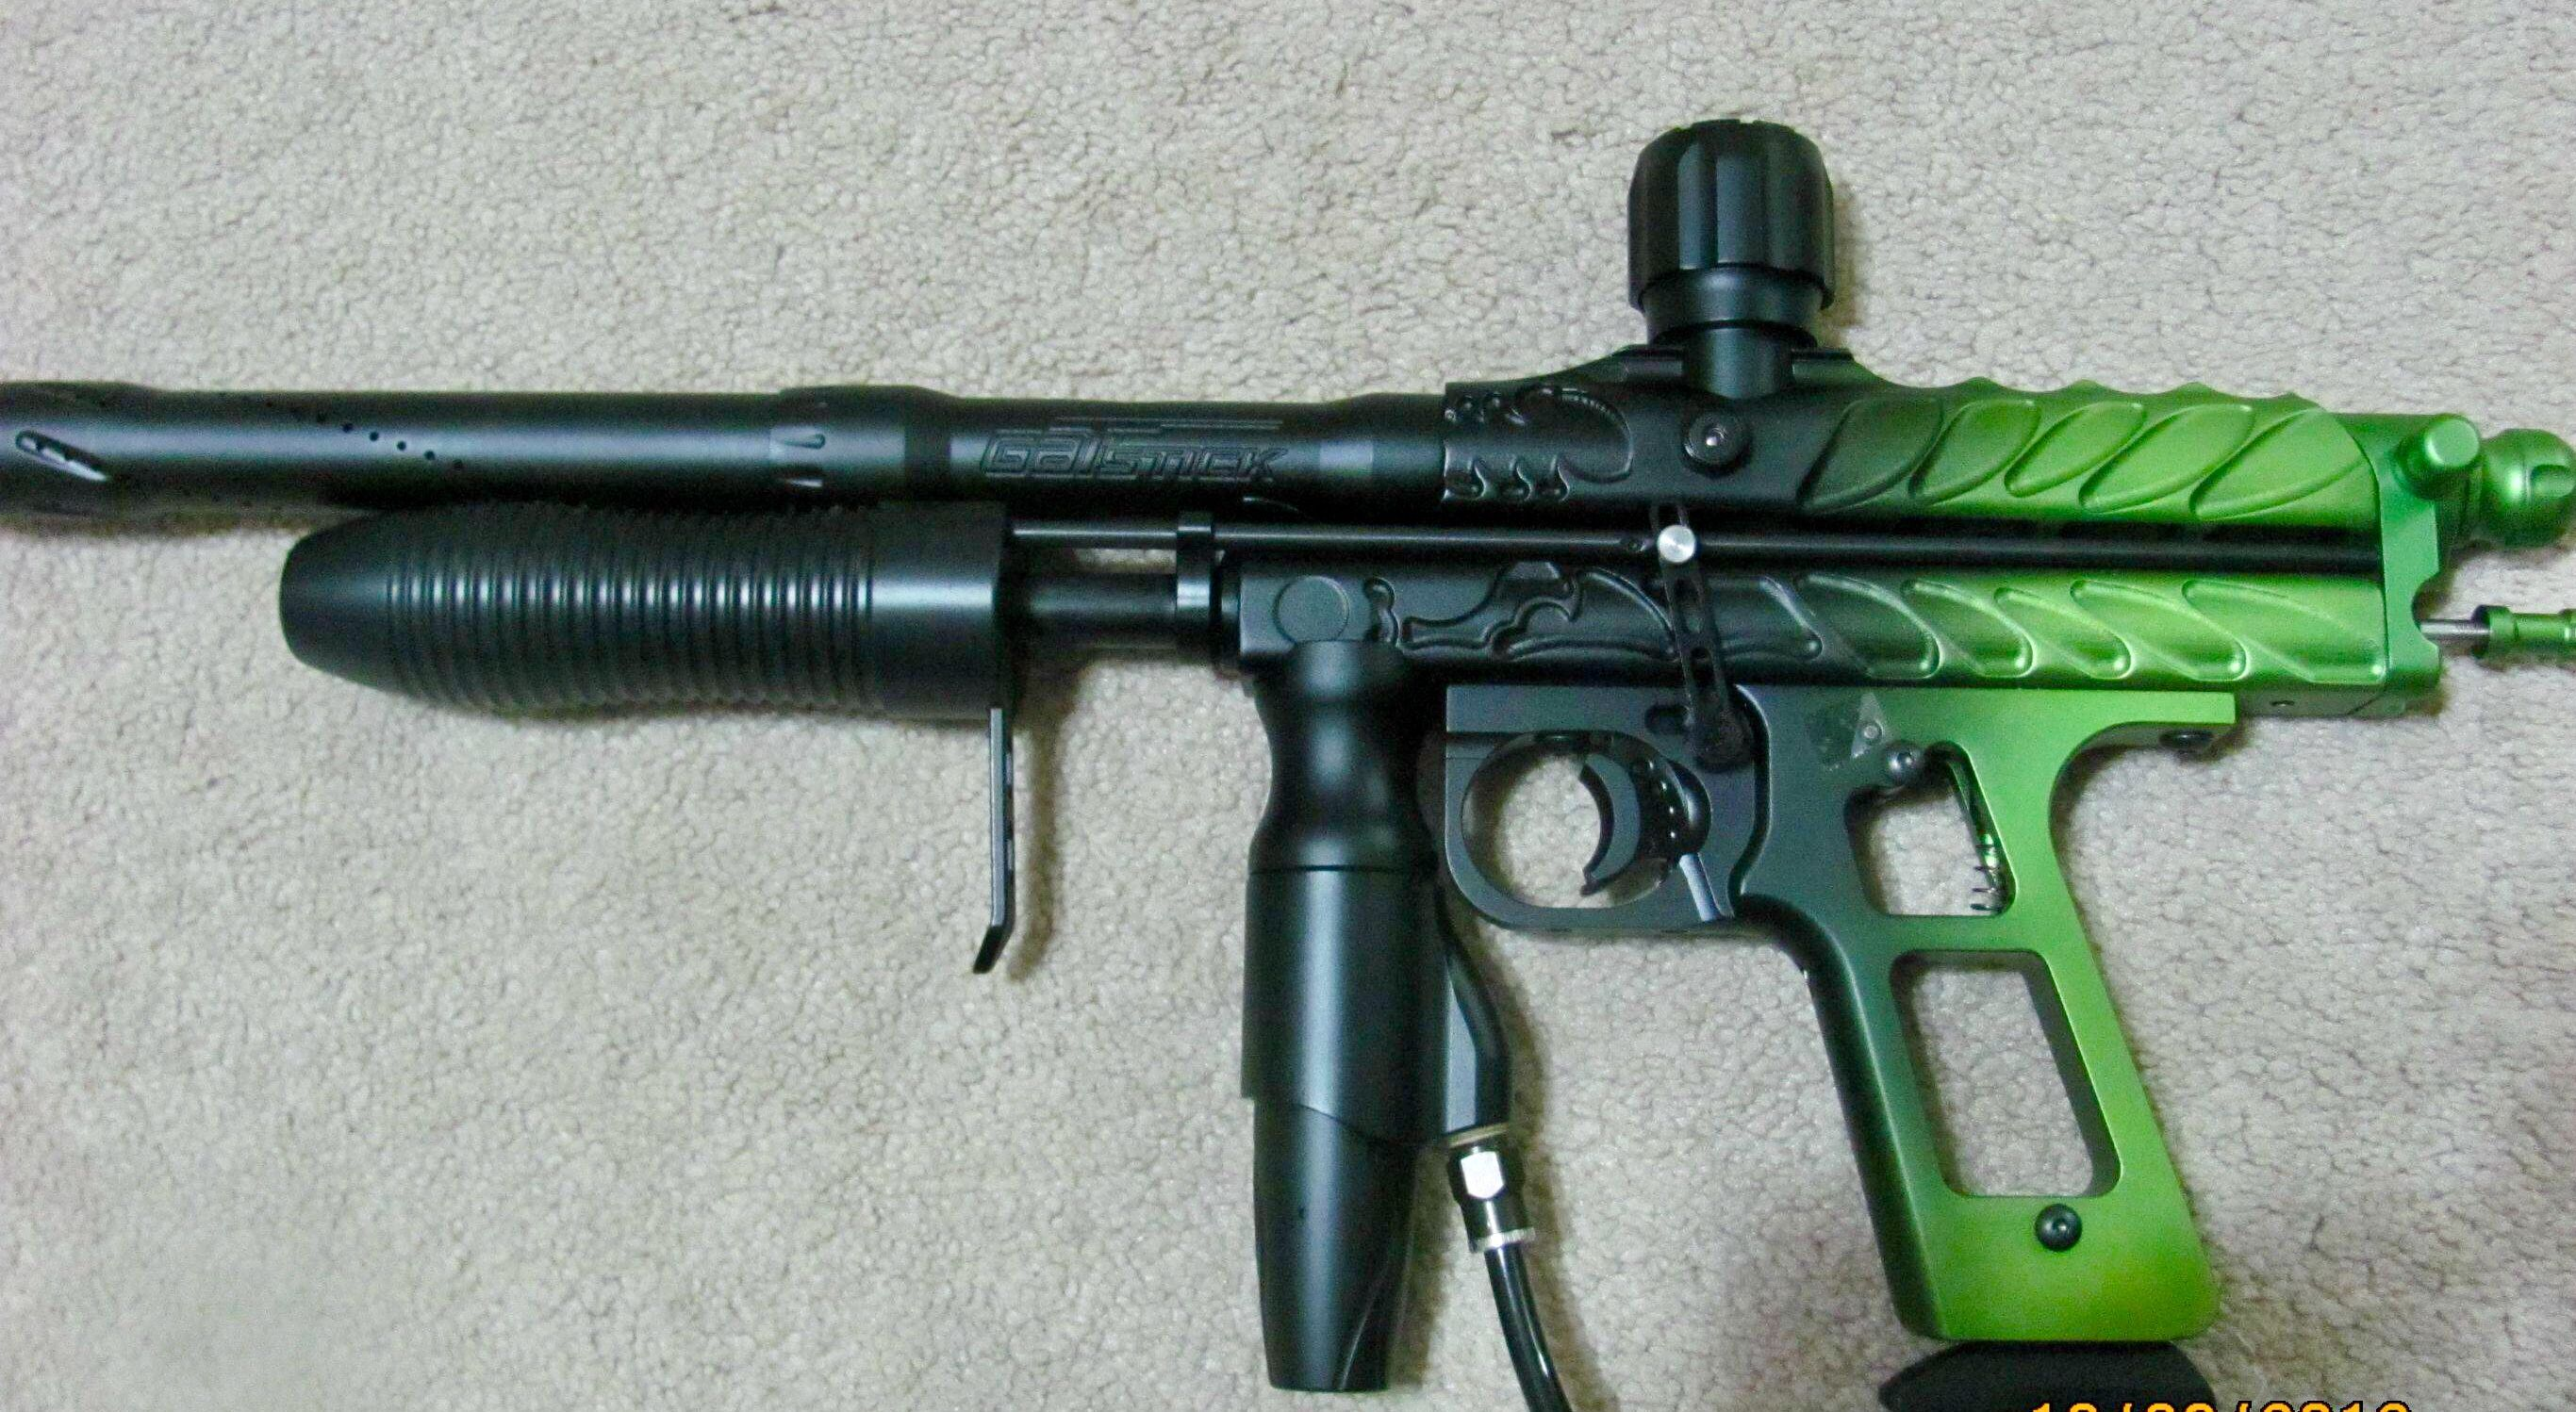 Pin on Sniper pump/mechanical paintball